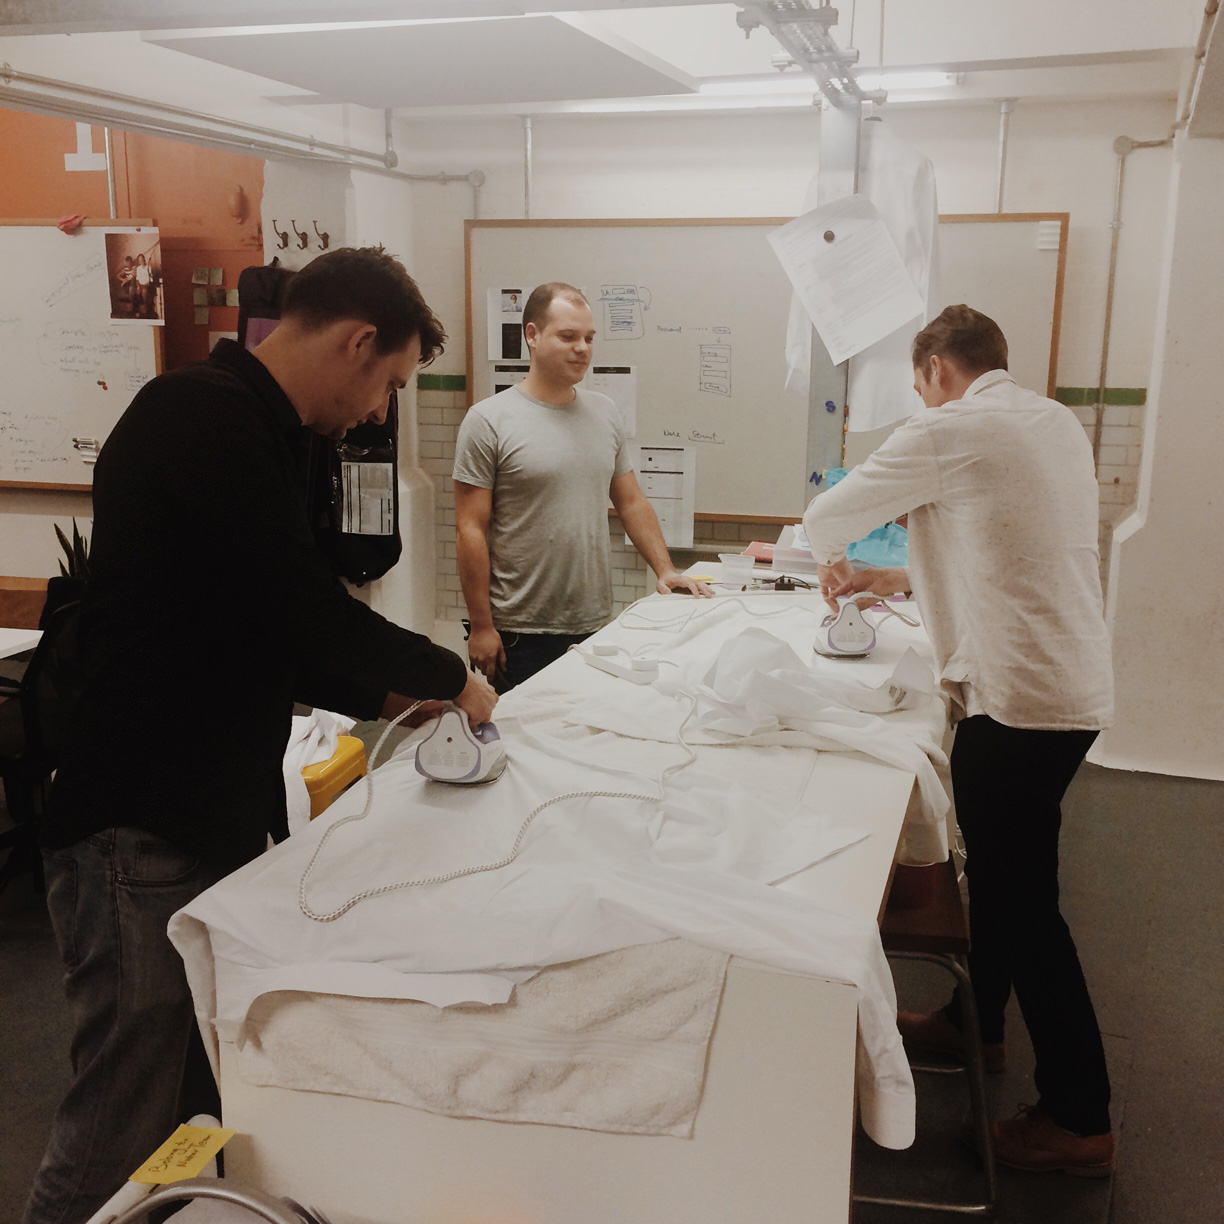 Ironing our shirts at the studio just before BAFTAs